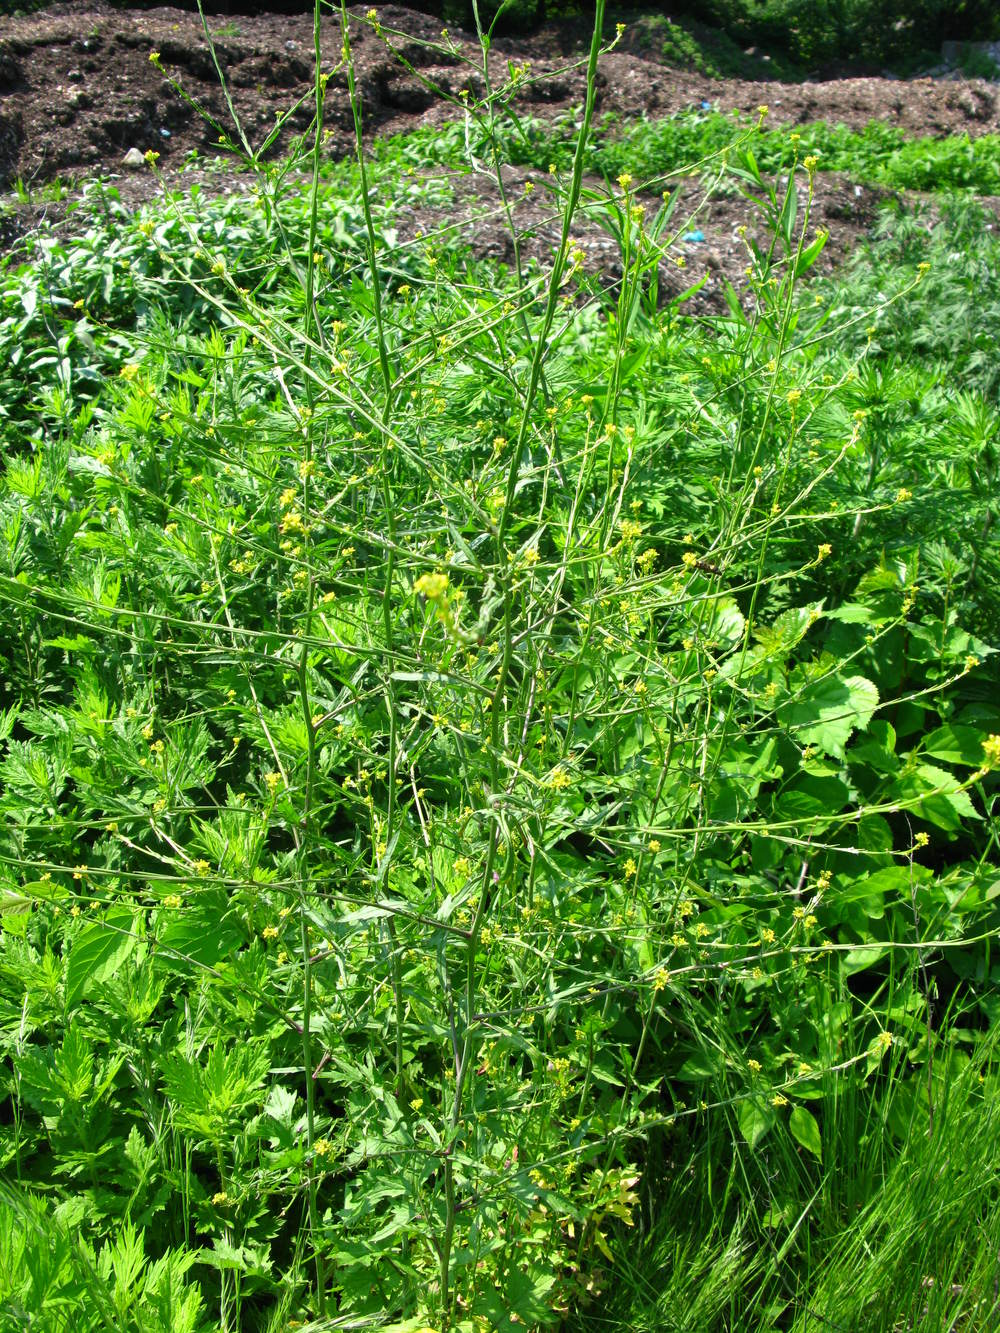 Sisymbrium officinale  Hedge mustard